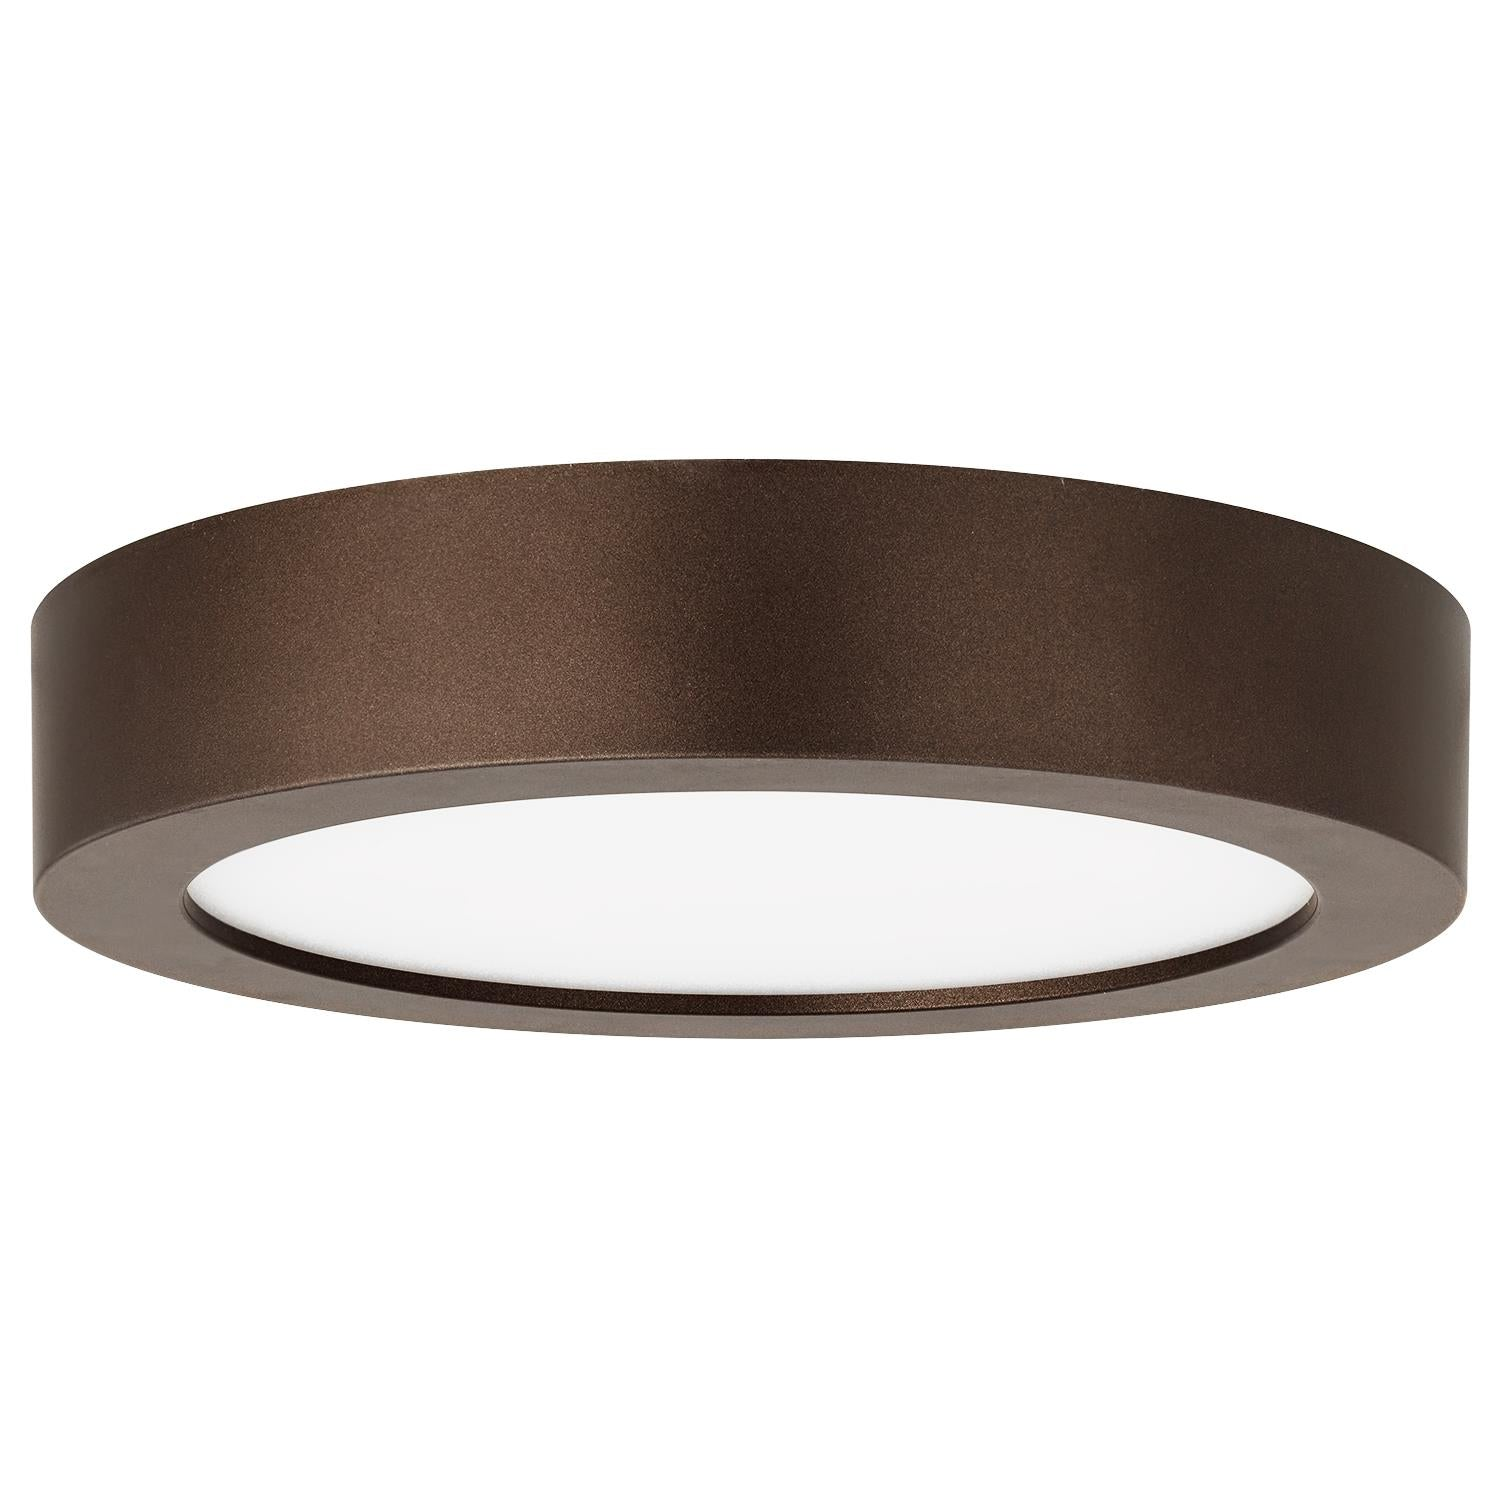 SUNLITE 5.5in. Round LED Mini Flat Fixture 600Lm 3000K Warm White Bronze Finish